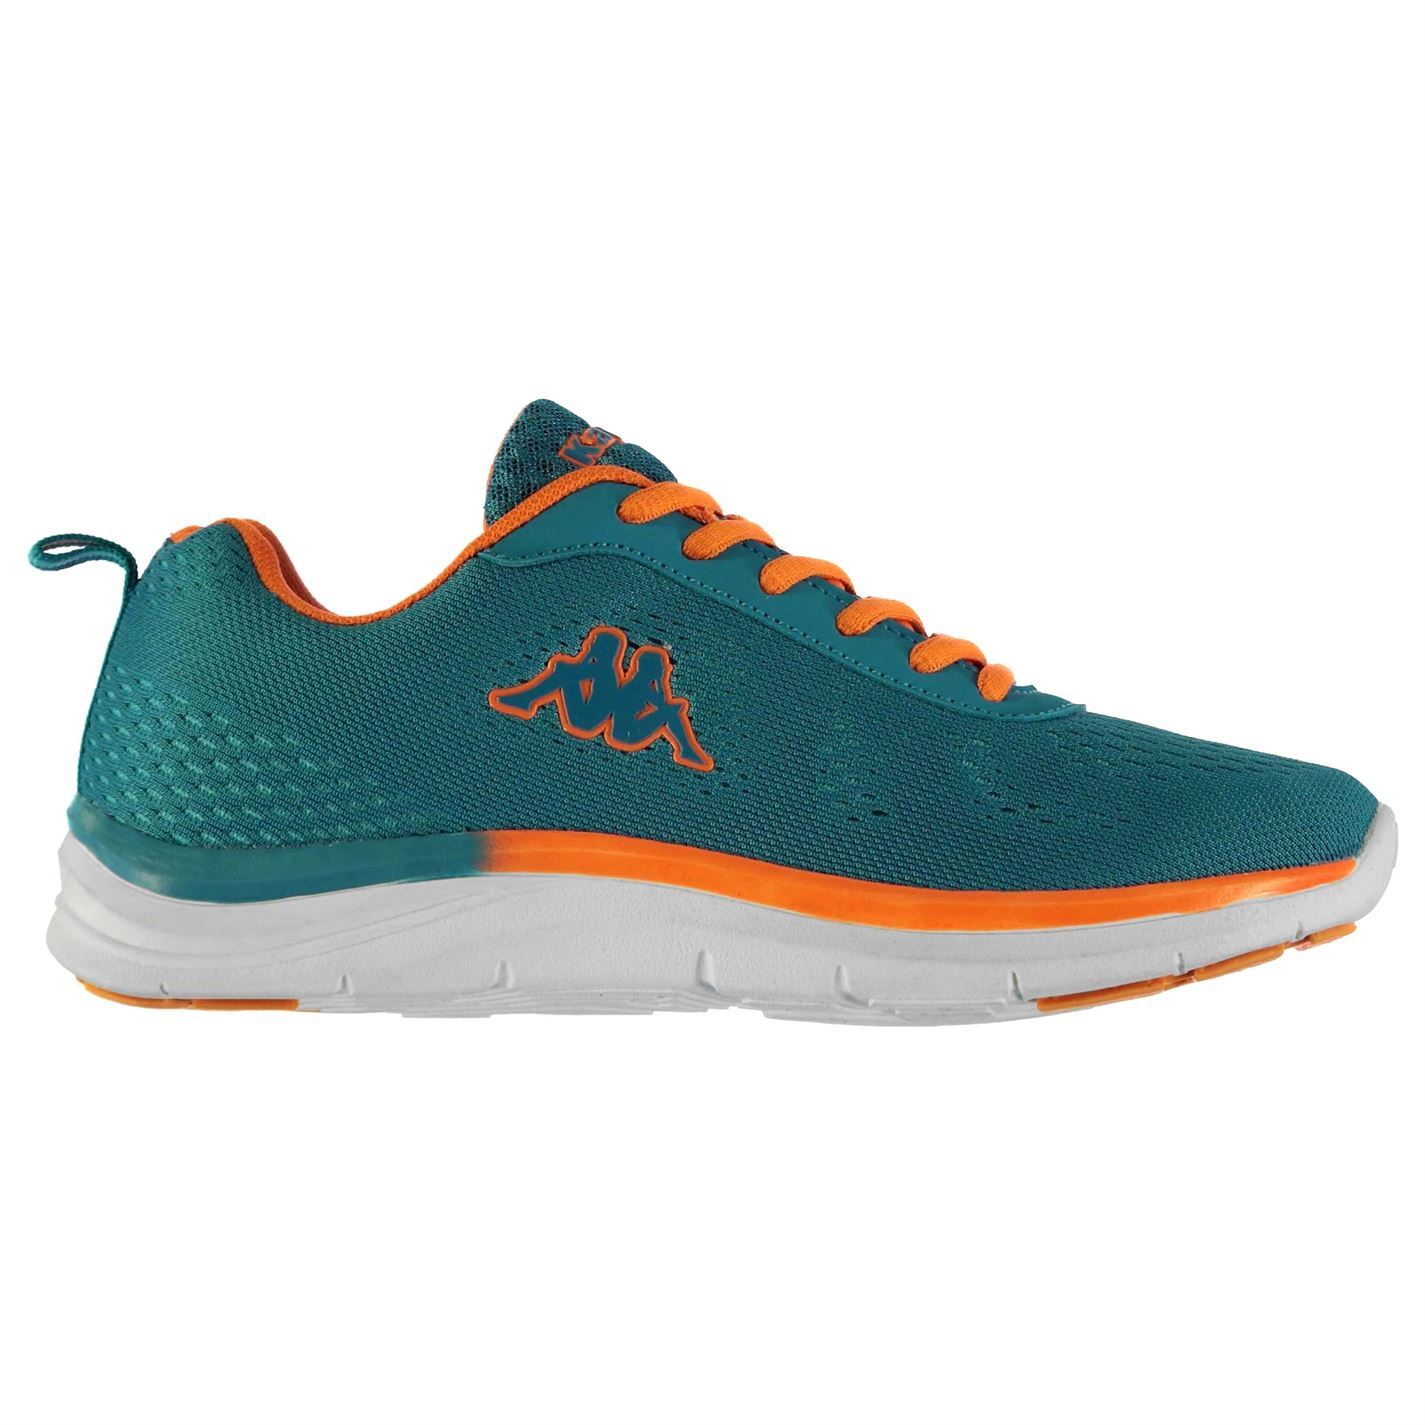 Kappa-Femme-Cambus-4-coureurs-Baskets-Chaussures-Running-Cross-Training-Lacets